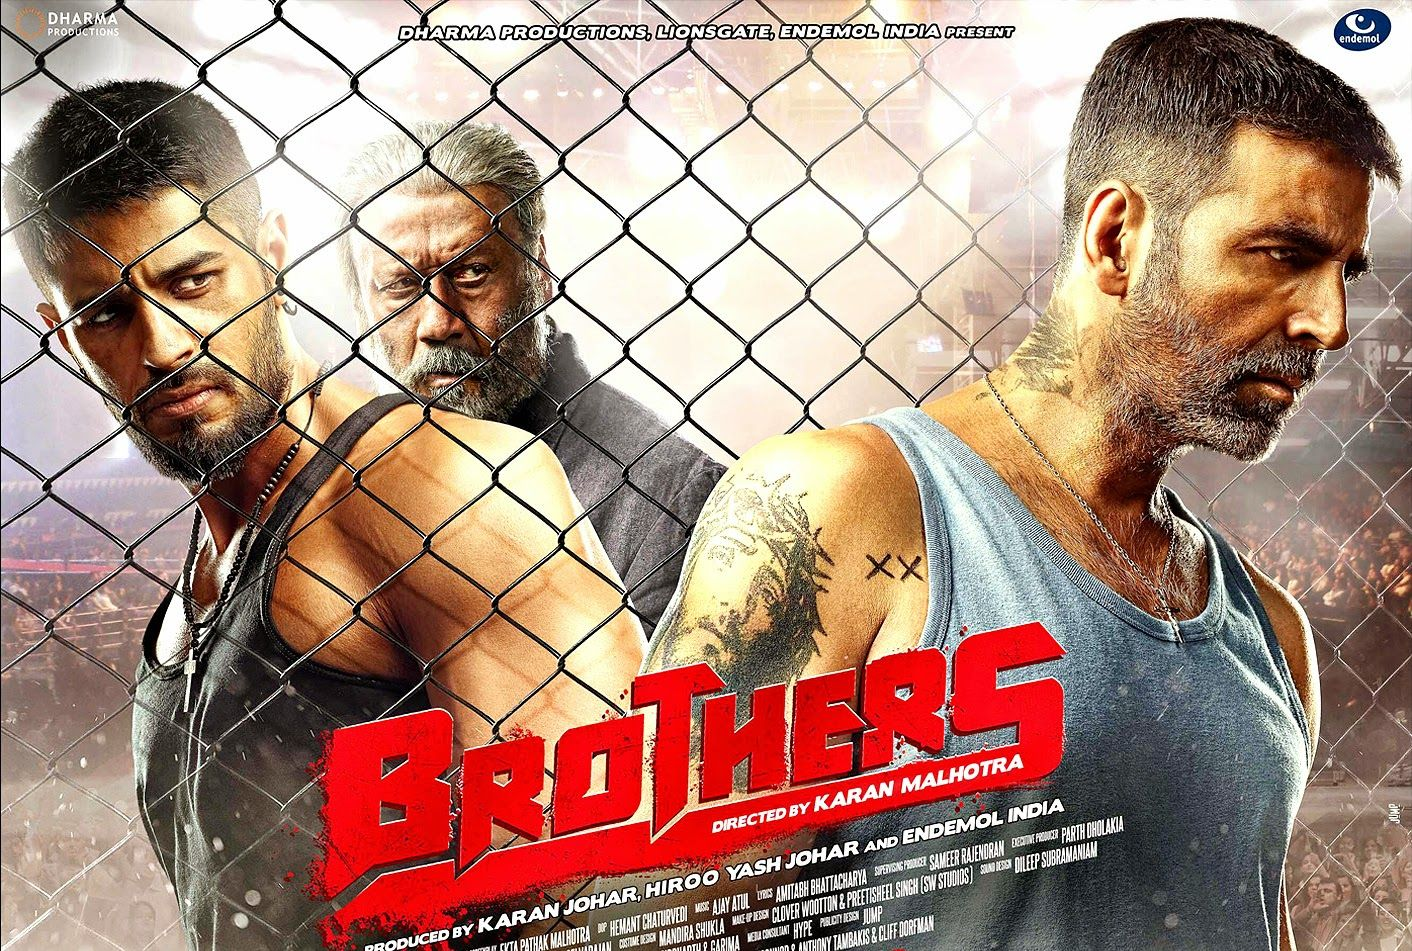 download full hd bollywood movies from our safe and virus free links